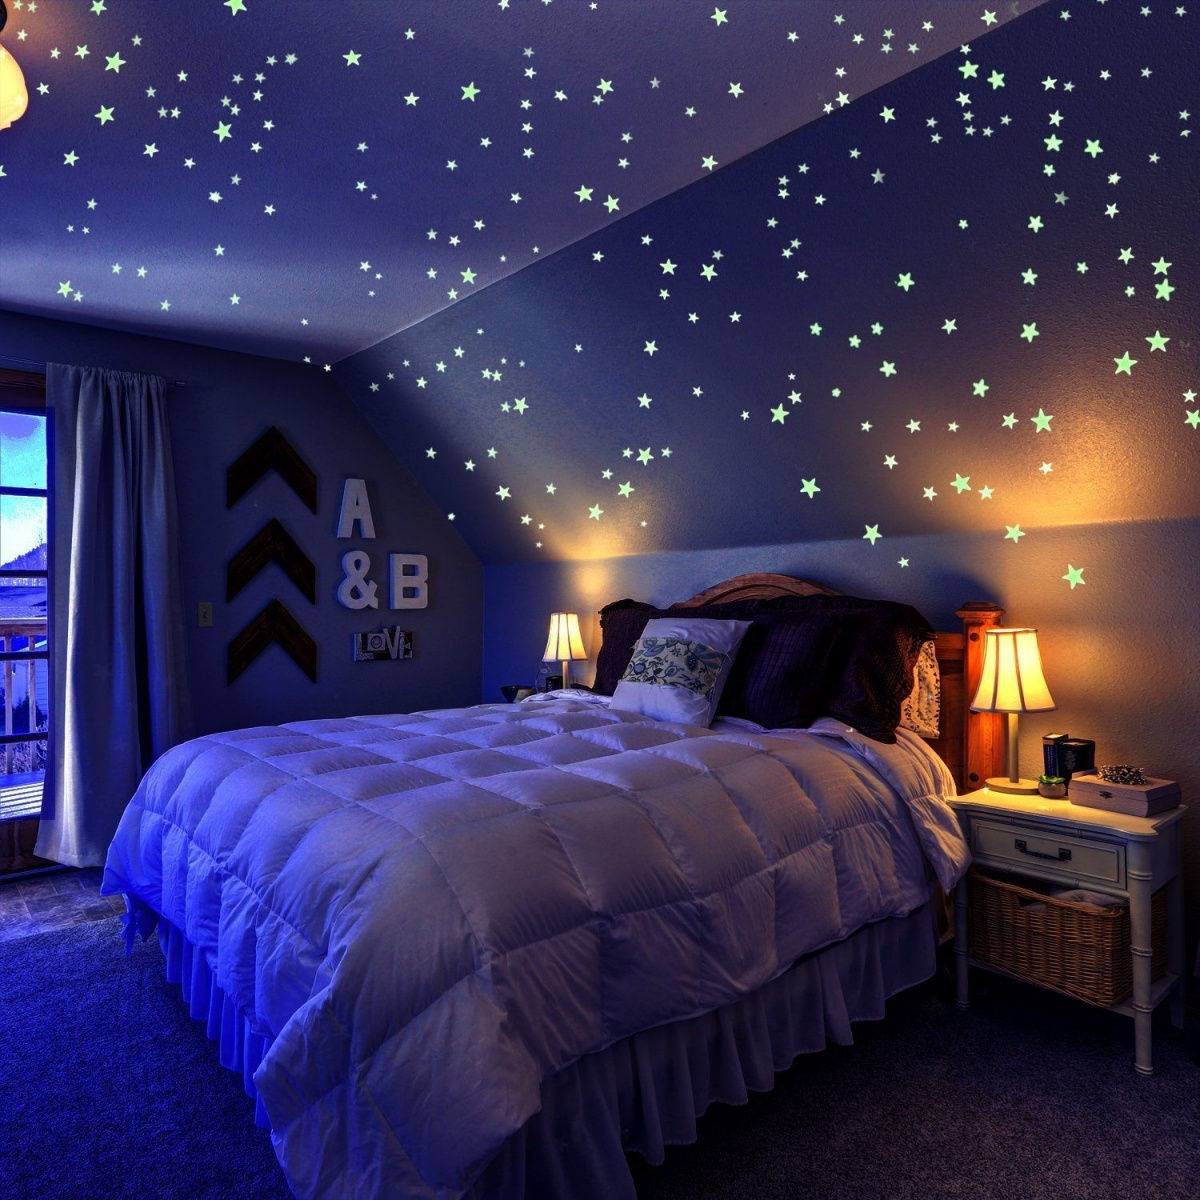 Glow-in-the-dark stars 10 Fun Nightlights for Your Child's Room